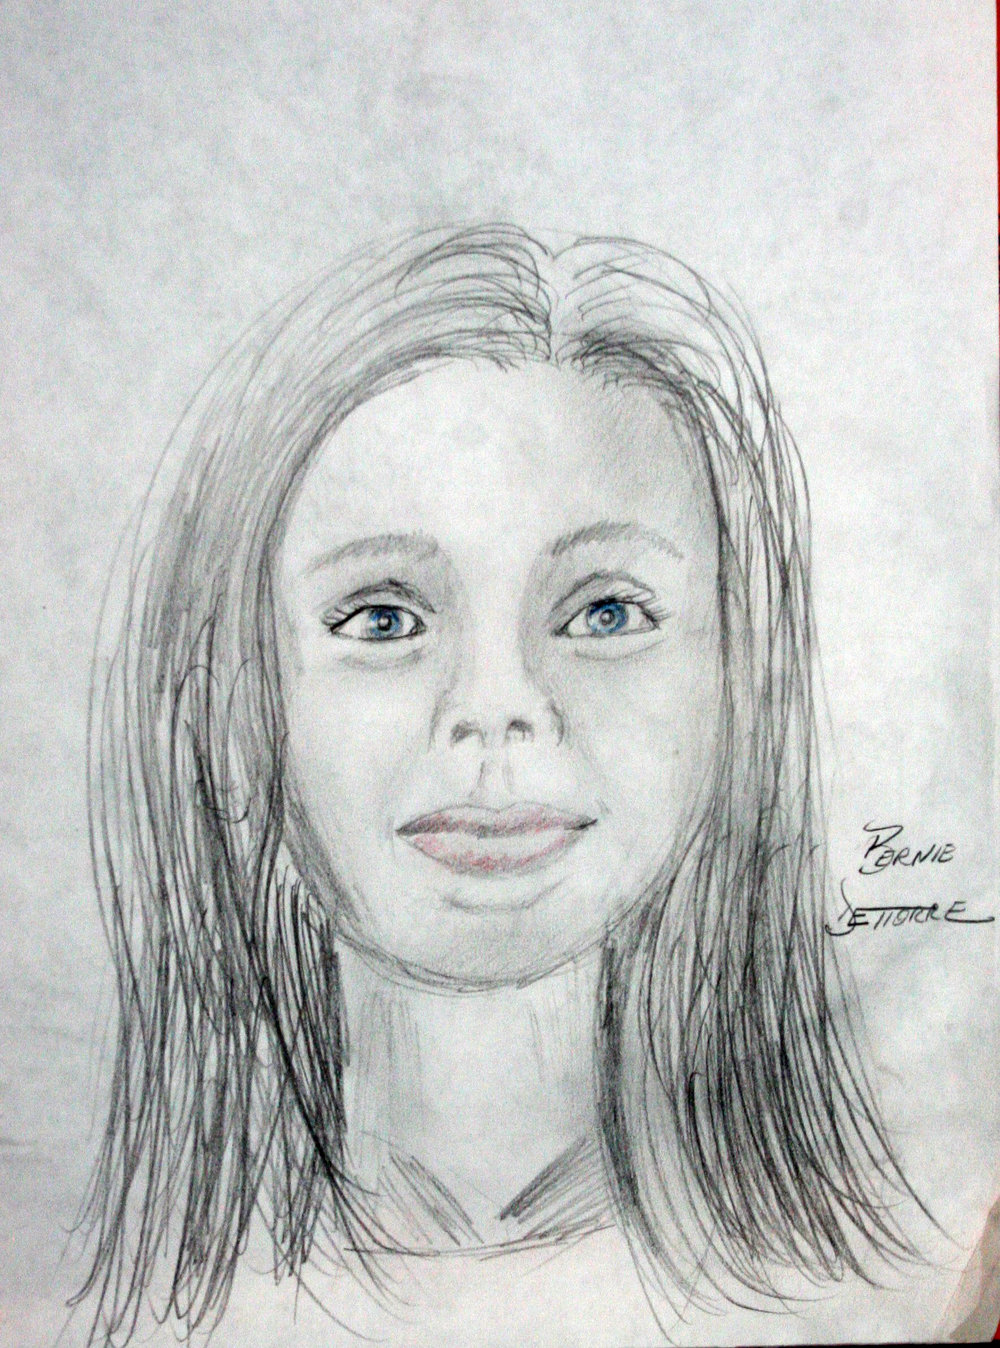 Bernie D'ettorre did this drawing of Tillie.